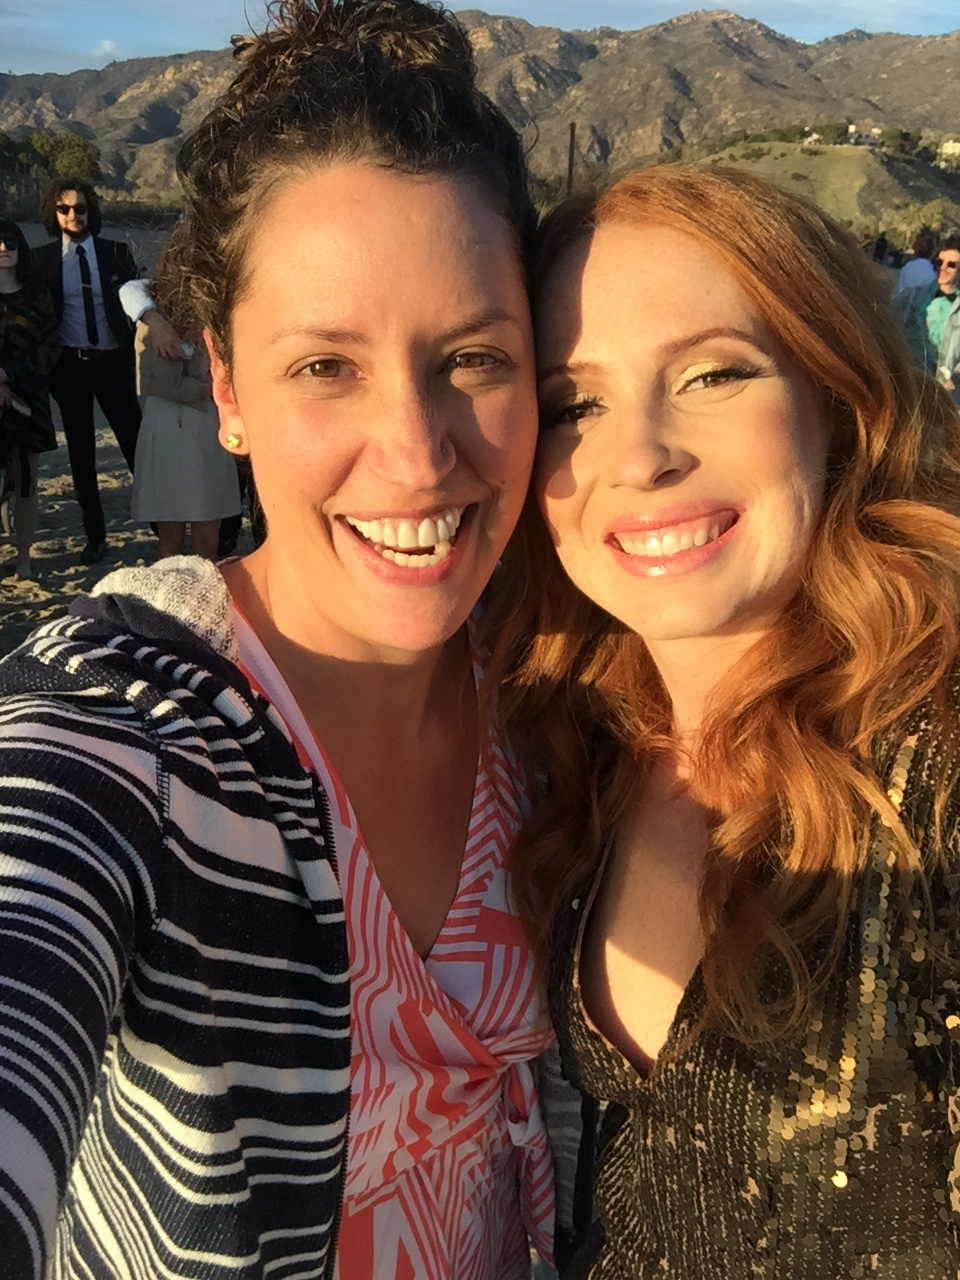 Me with my friend Melissa (who is the one that told me about Kevin's story and got me to watch The Crash Reel!) at her wedding in Malibu on New Year's Day.